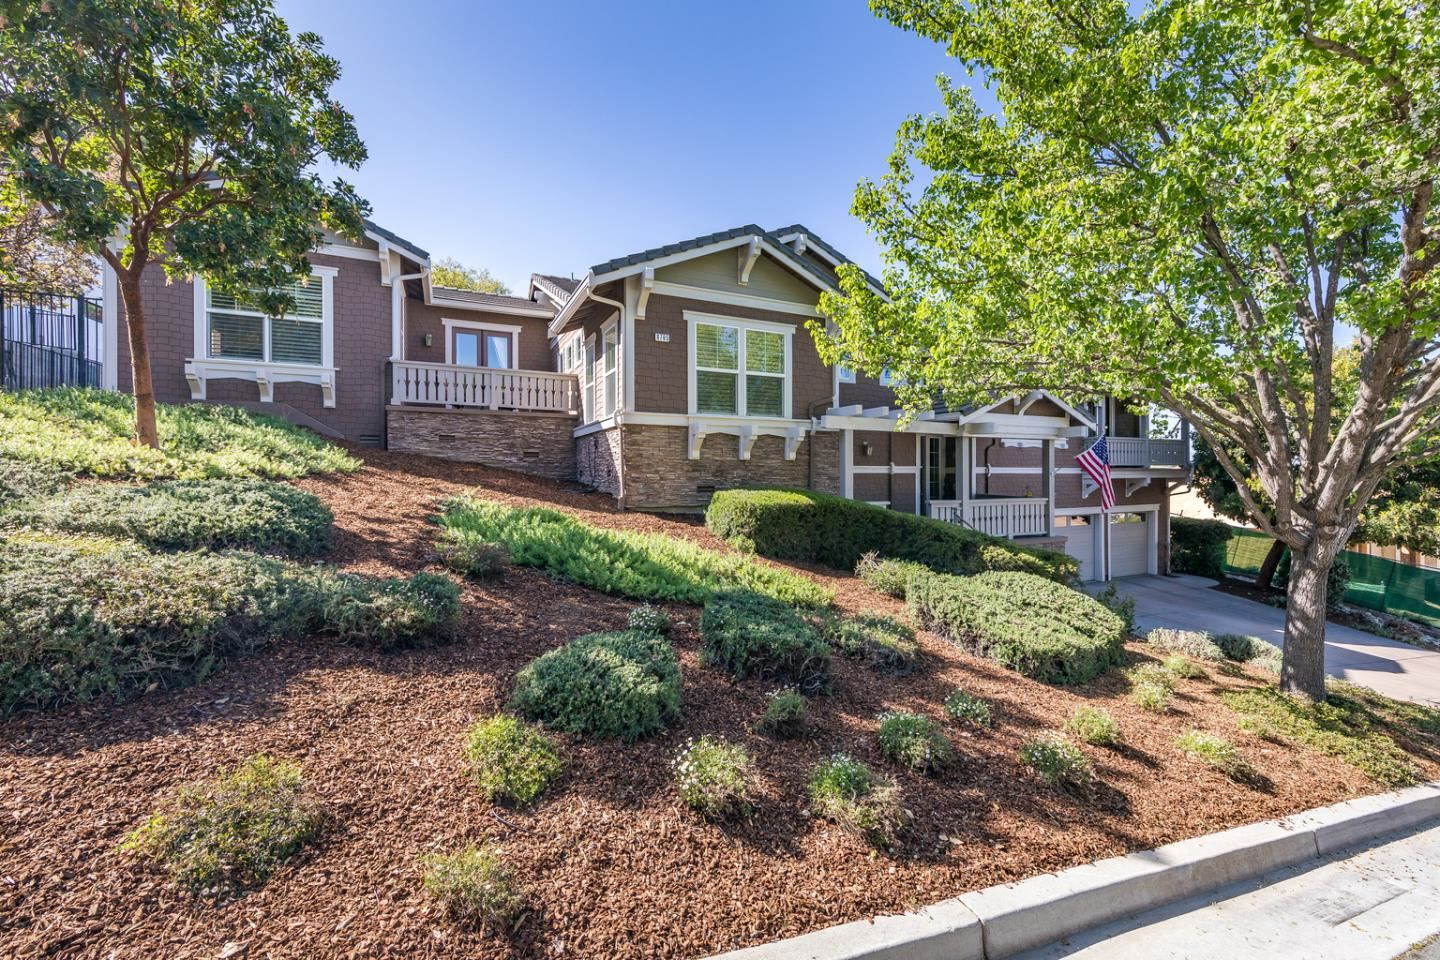 Photo for 8765 Wild Iris DR, GILROY, CA 95020 (MLS # ML81837702)